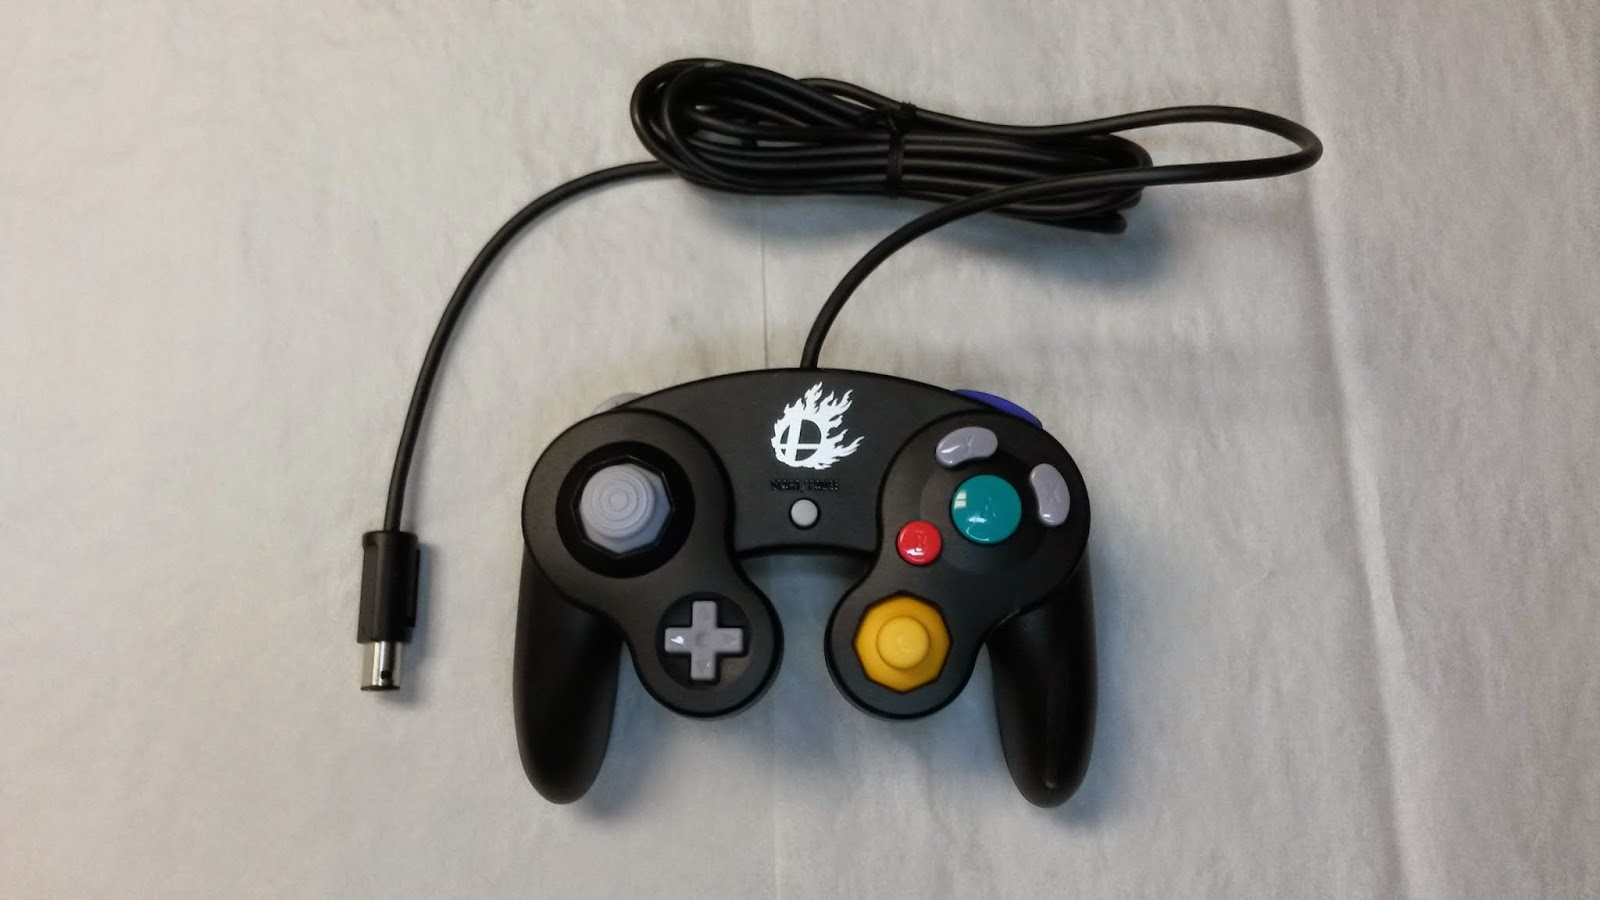 gamecube controller wiring diagram right stick wiring library ps1 controller wiring diagram gamecube controller wiring diagram right stick [ 1600 x 900 Pixel ]